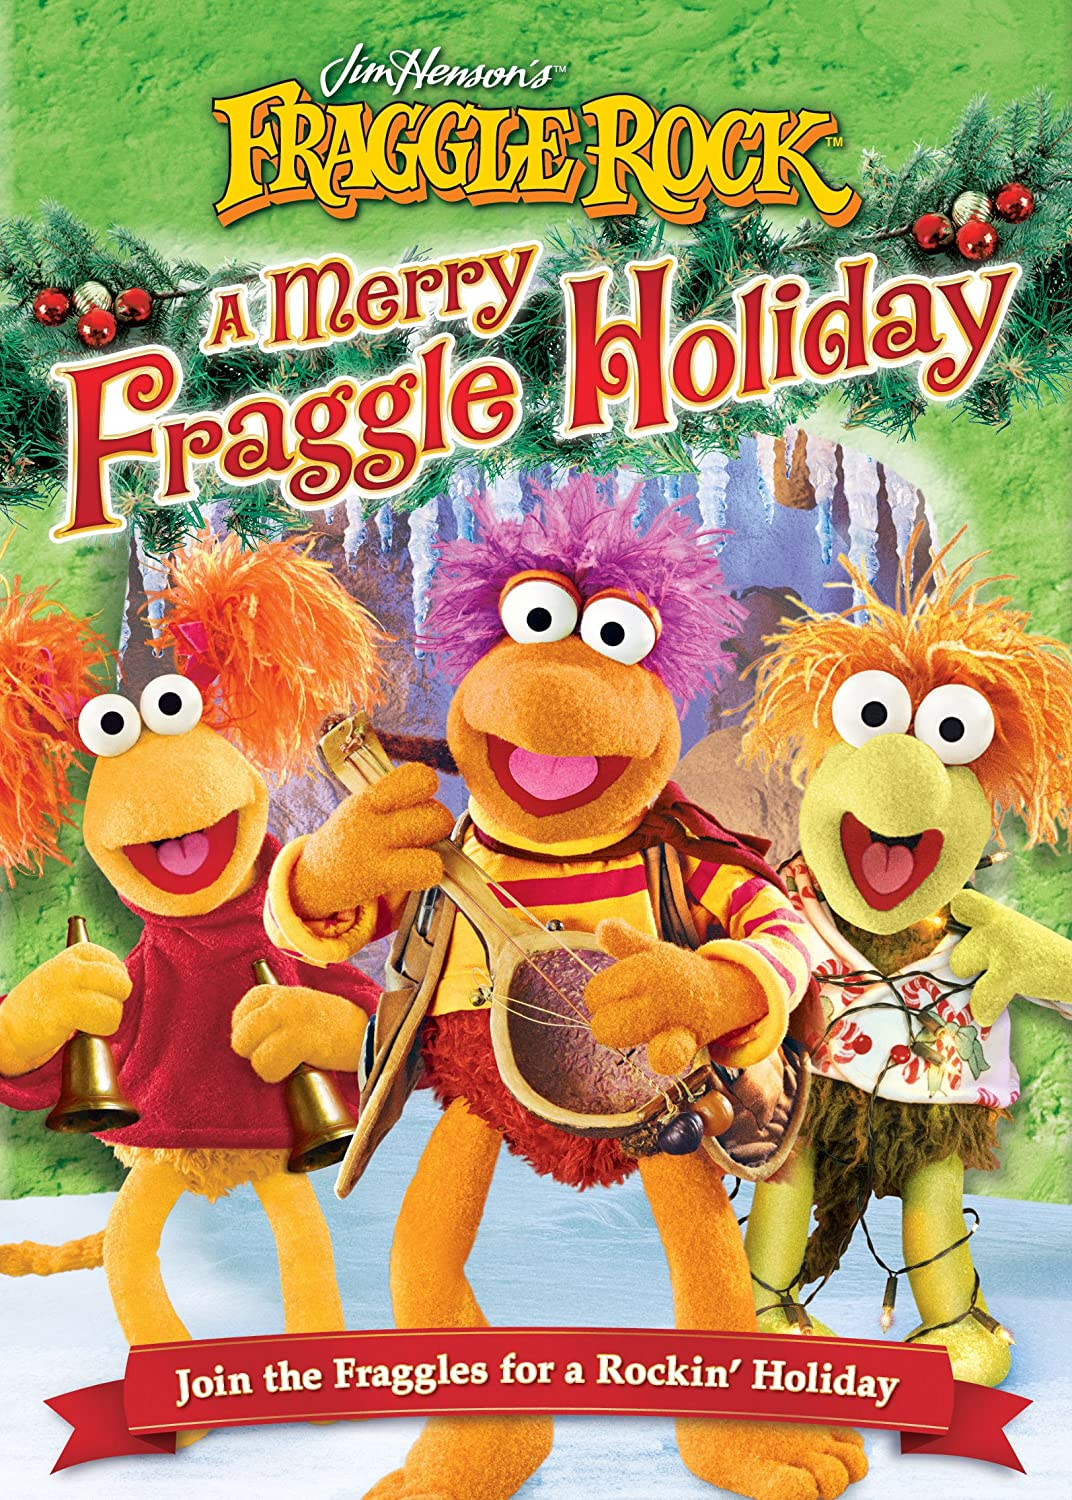 Amazon.com: Fraggle Rock: Merry Holiday: Fraggle Rock: Movies & TV